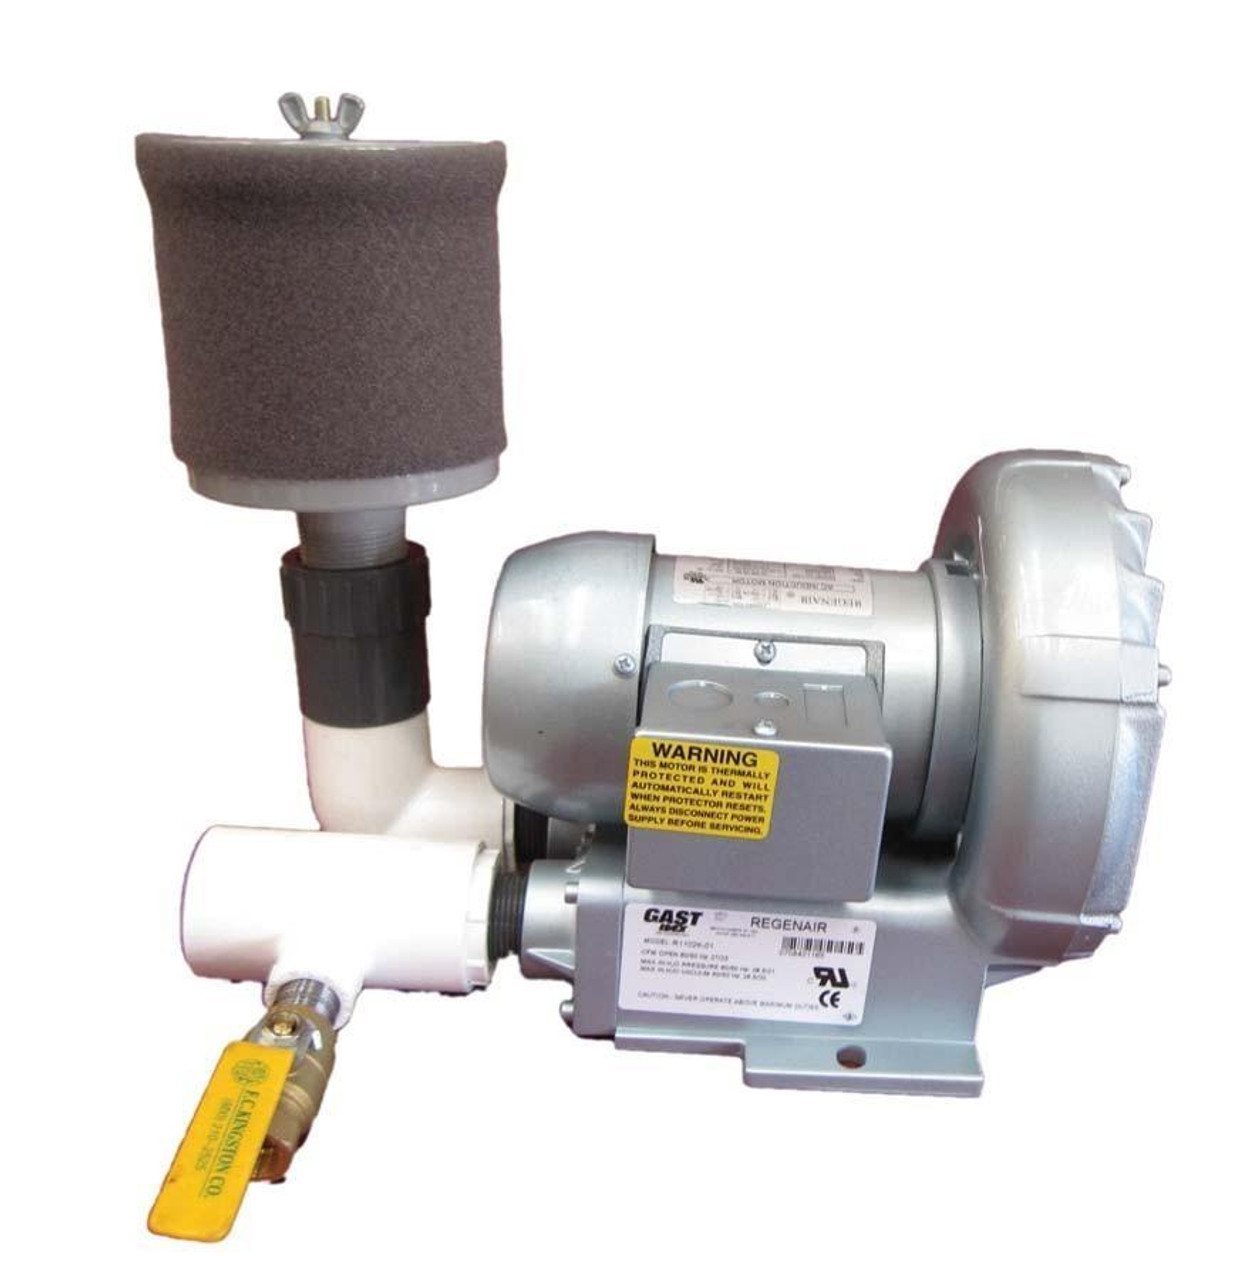 EasyPro Regenerative Blowers with filter & valve